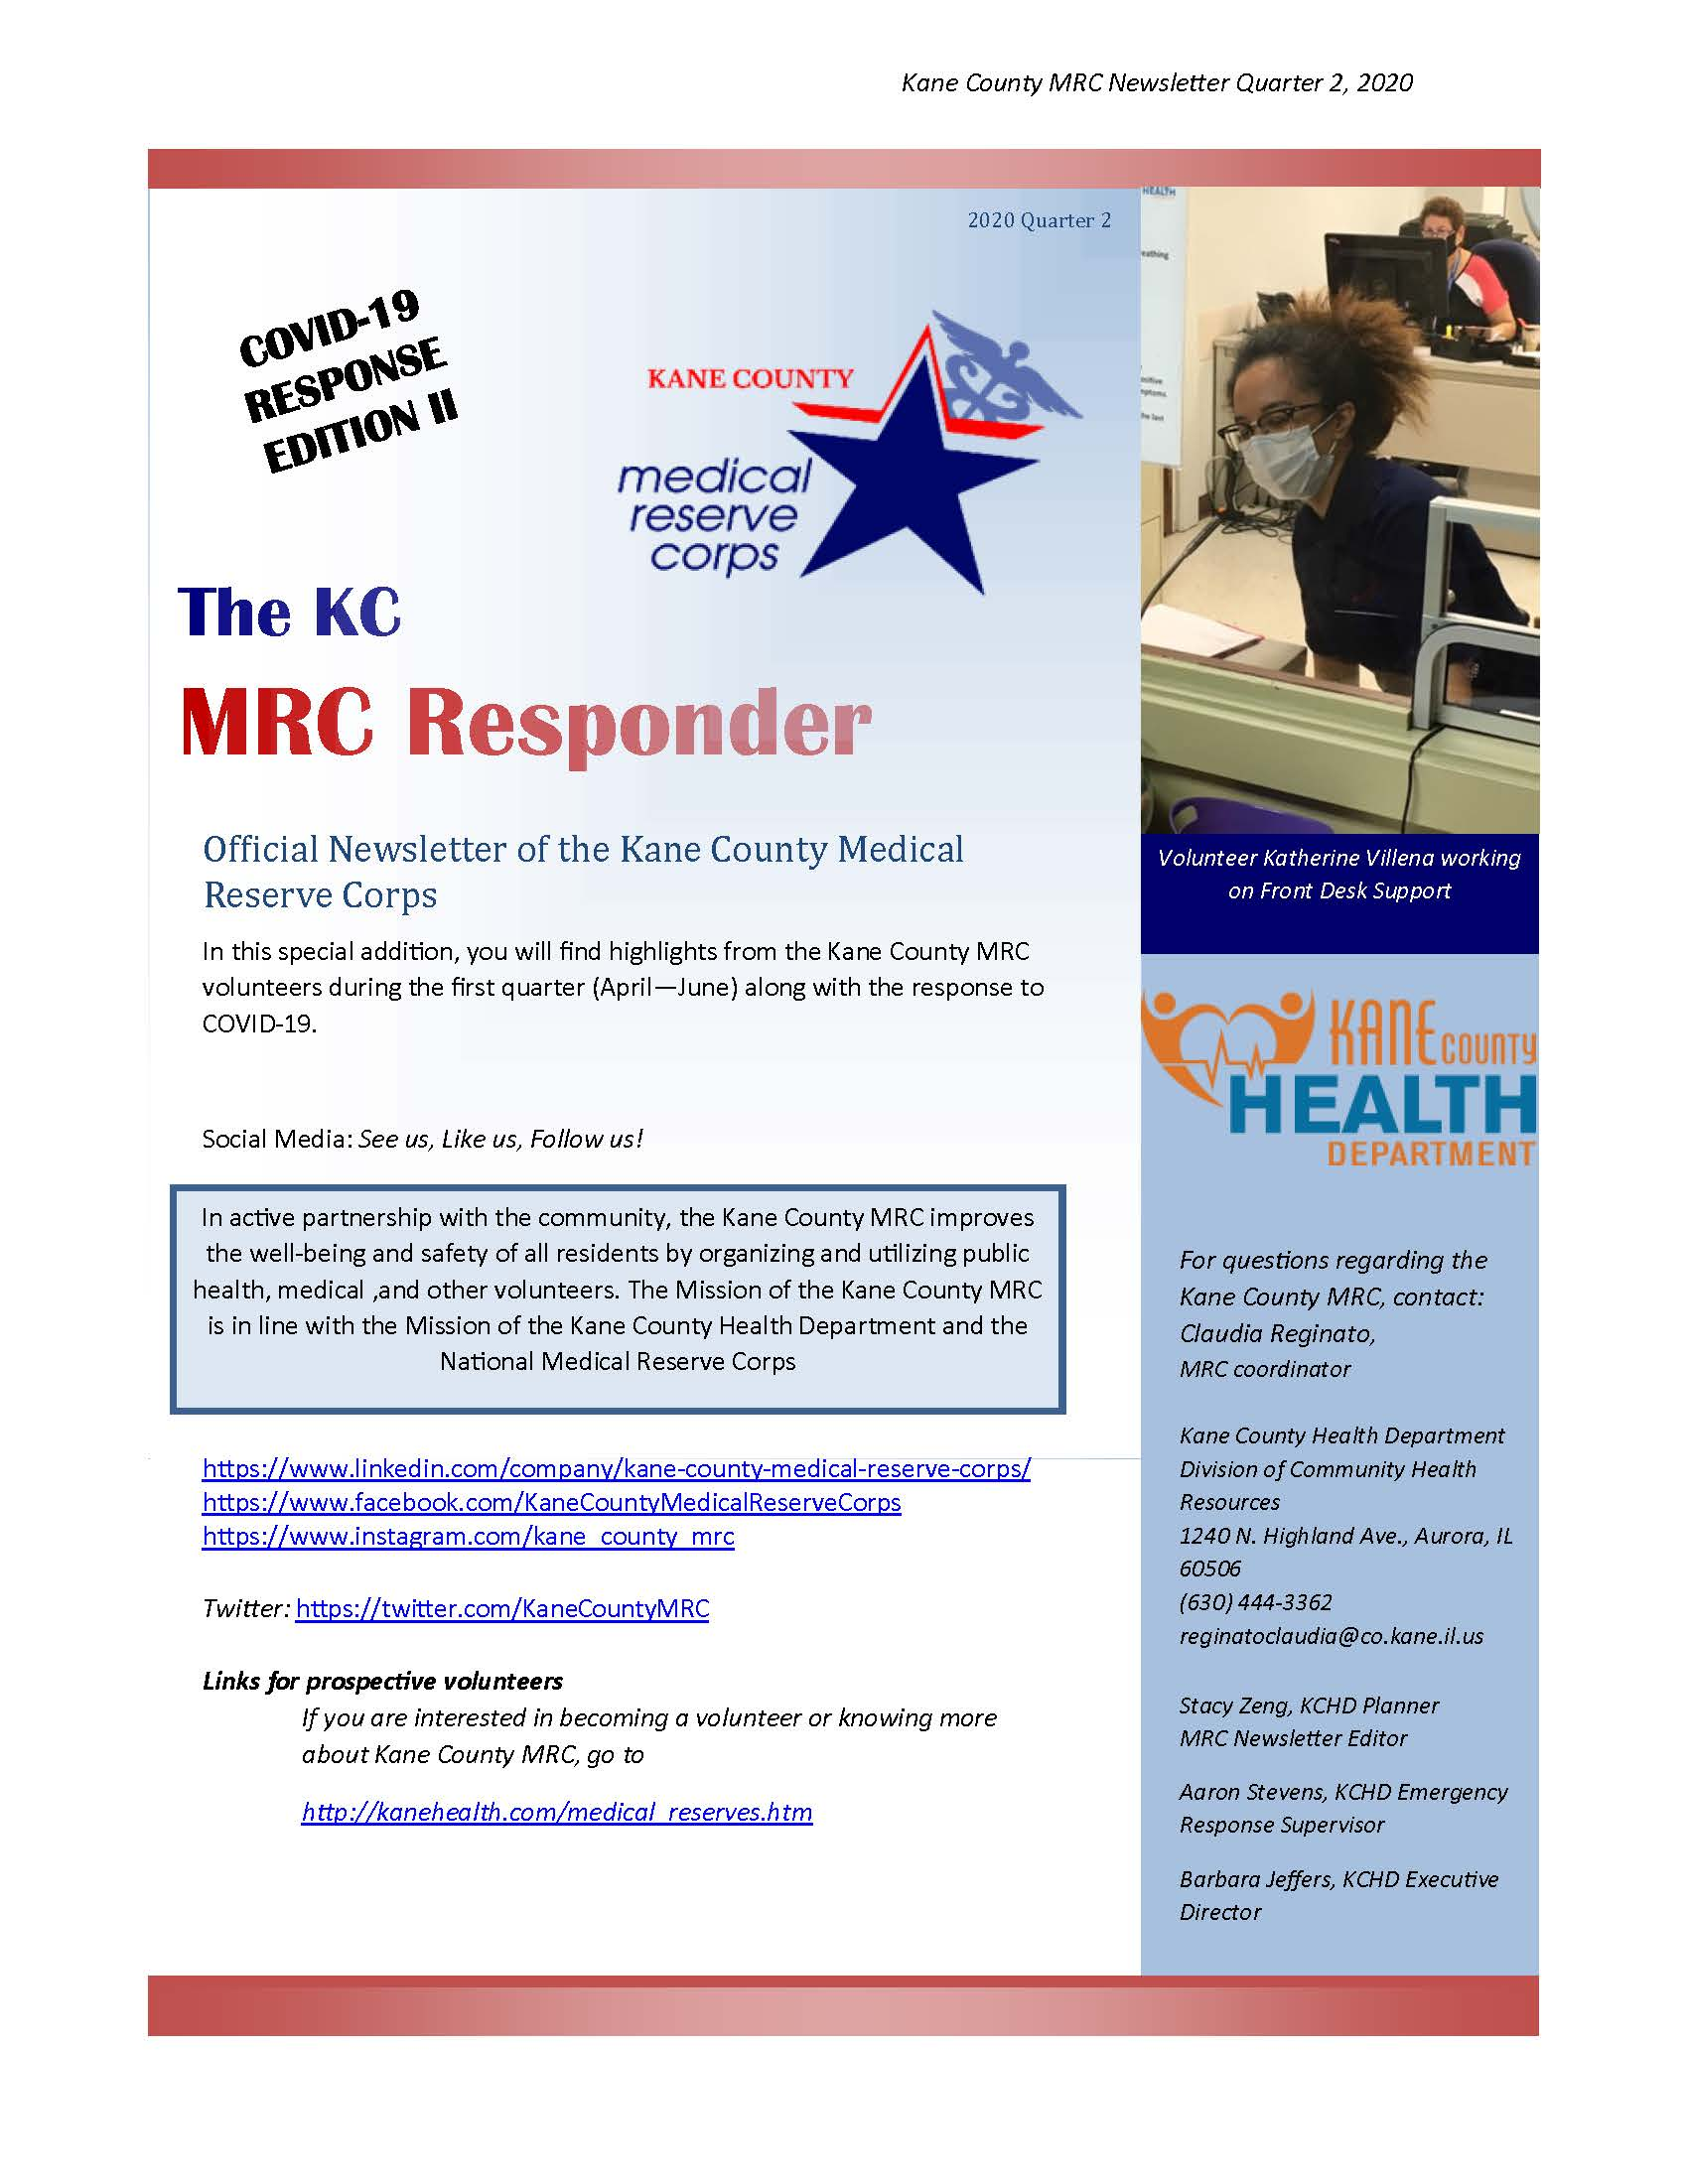 MRC Newsletter.Qtr2.2020cover.jpg